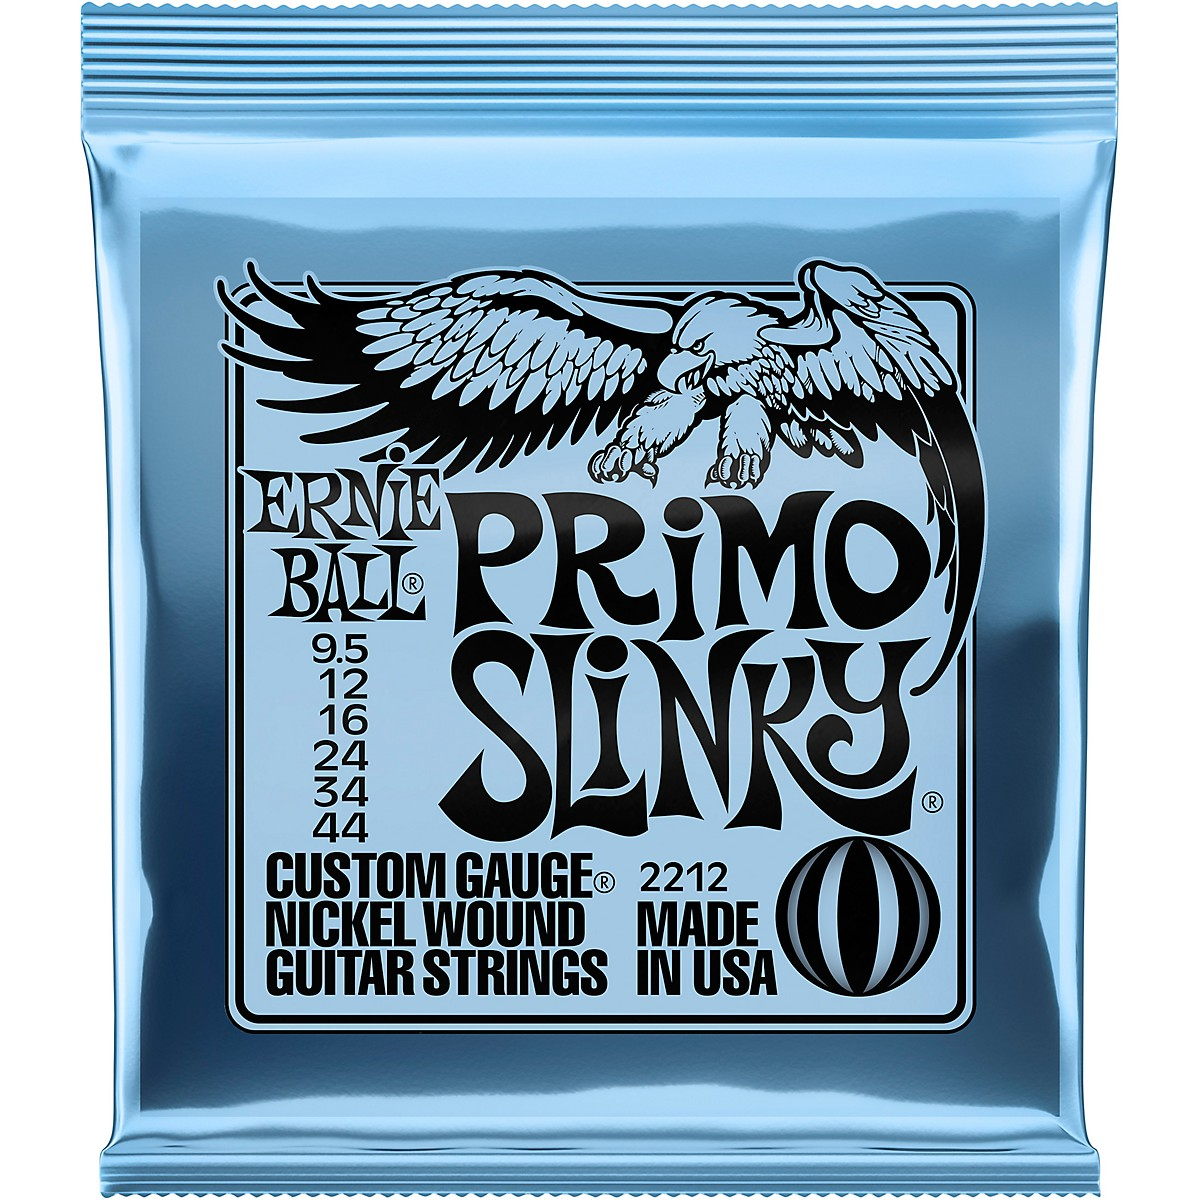 Ernie Ball Primo Slinky Nickel Wound Electric Guitar Strings  Gauge